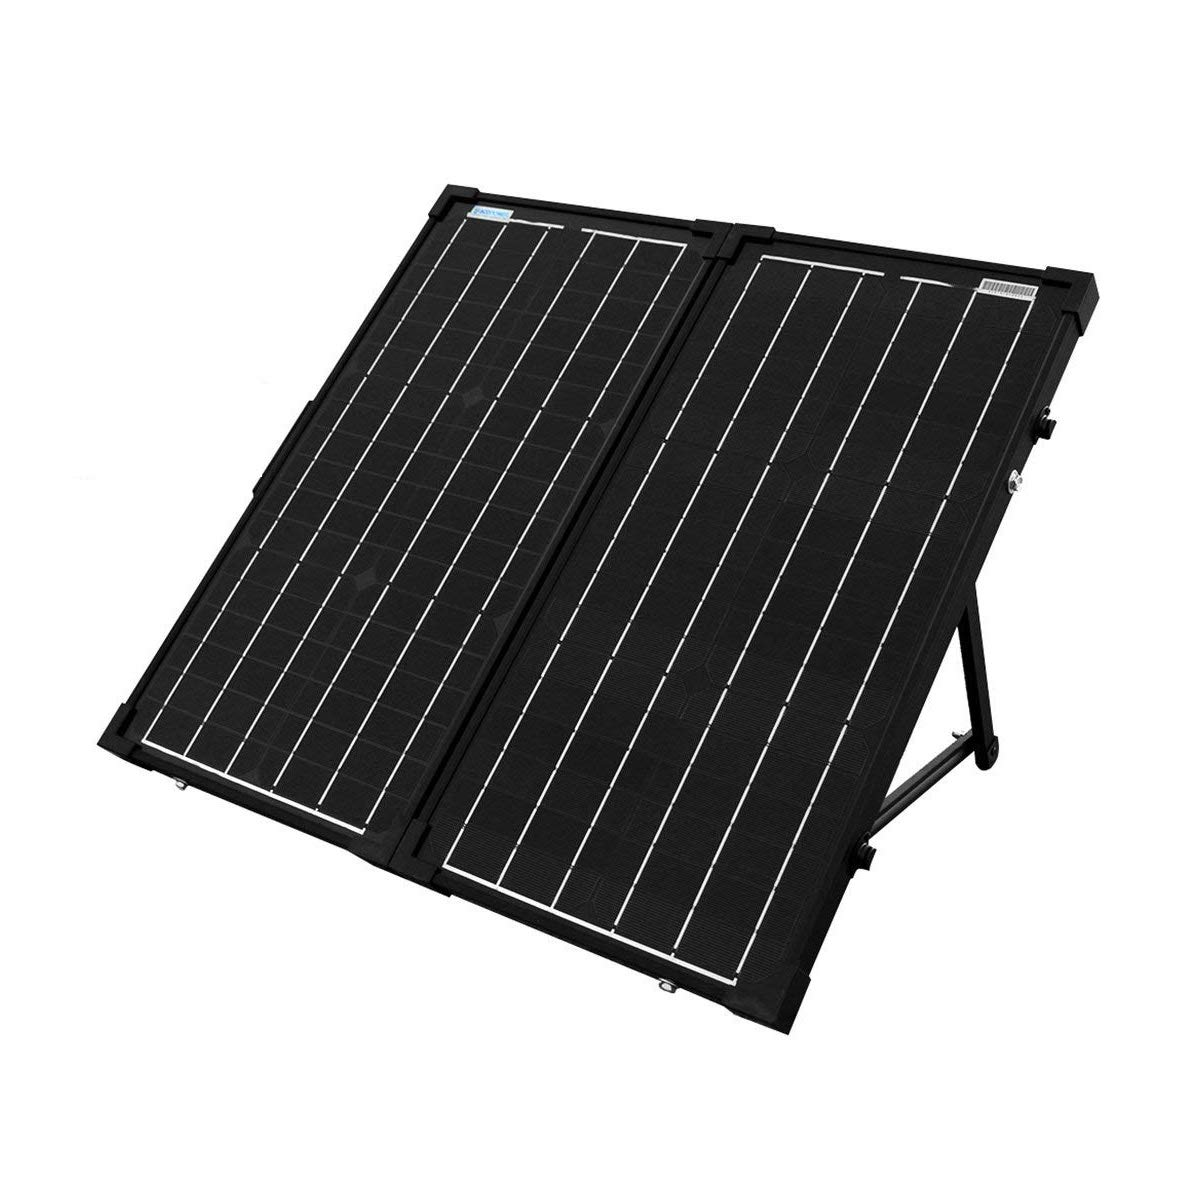 ACOPOWER HYS60-12MB 60W Foldable Panel, 12V Battery and Generator Ready Suitcase with Charge Controller Portable Solar kit by ACOPOWER